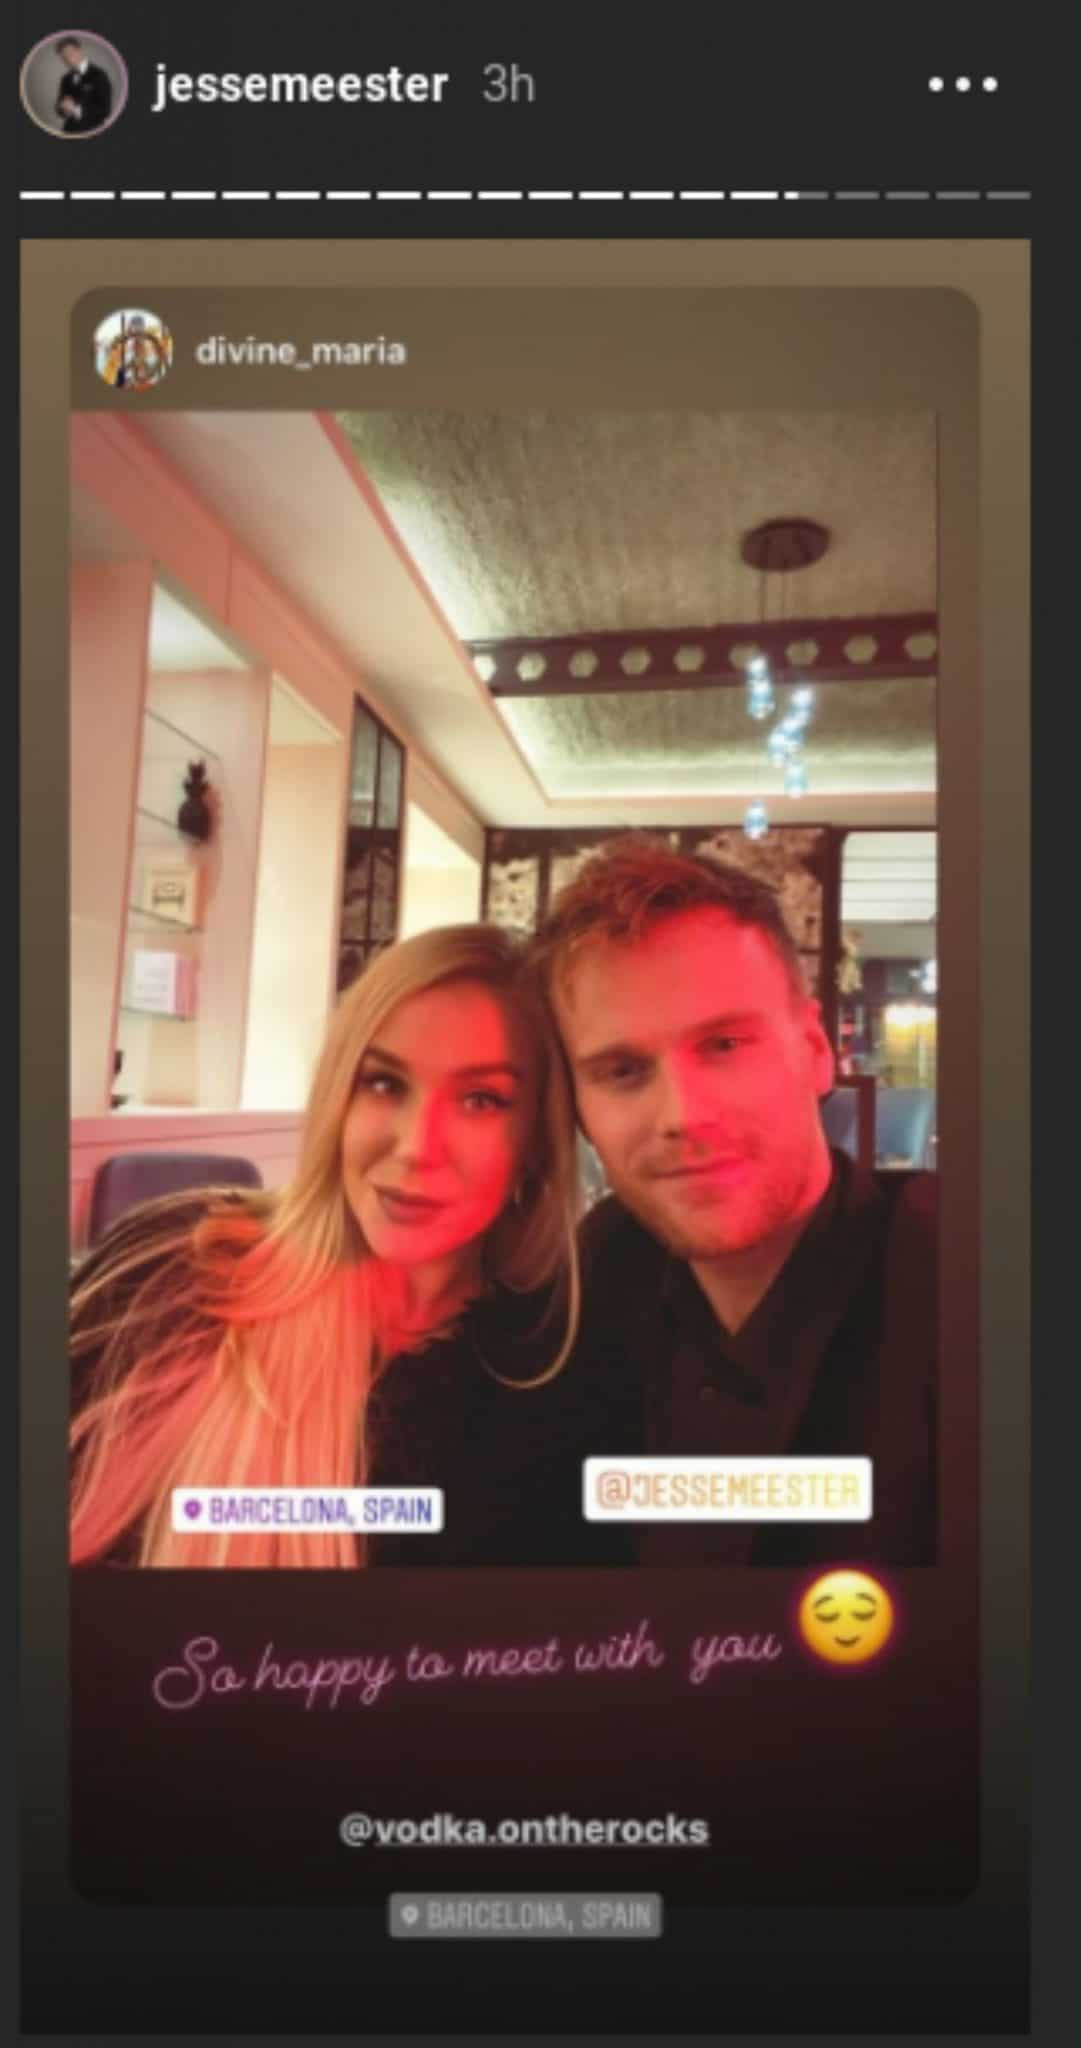 Jesse Meester shares a photo with Caesar's Maria